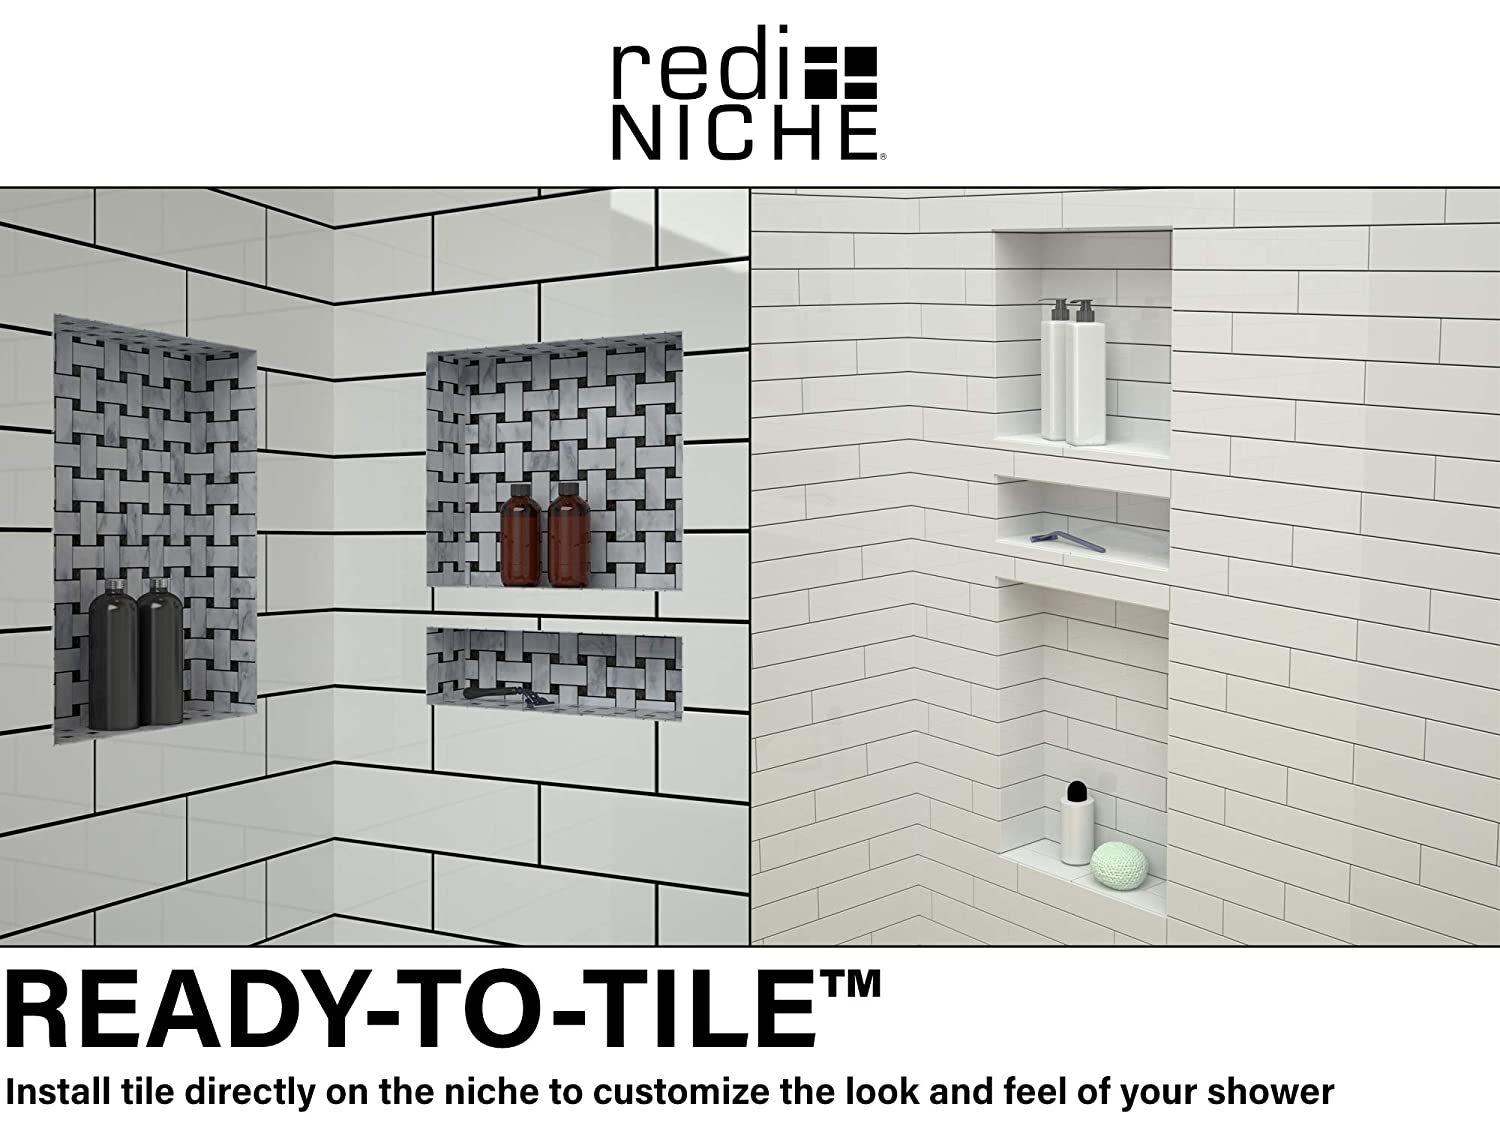 Redi Niche Double Recessed Shower Shelf   Black, Two Inner Shelves With  Divider, 16 Inch Width X 20 Inch Height X 4 Inch Depth   Shower  Installation Kits ...